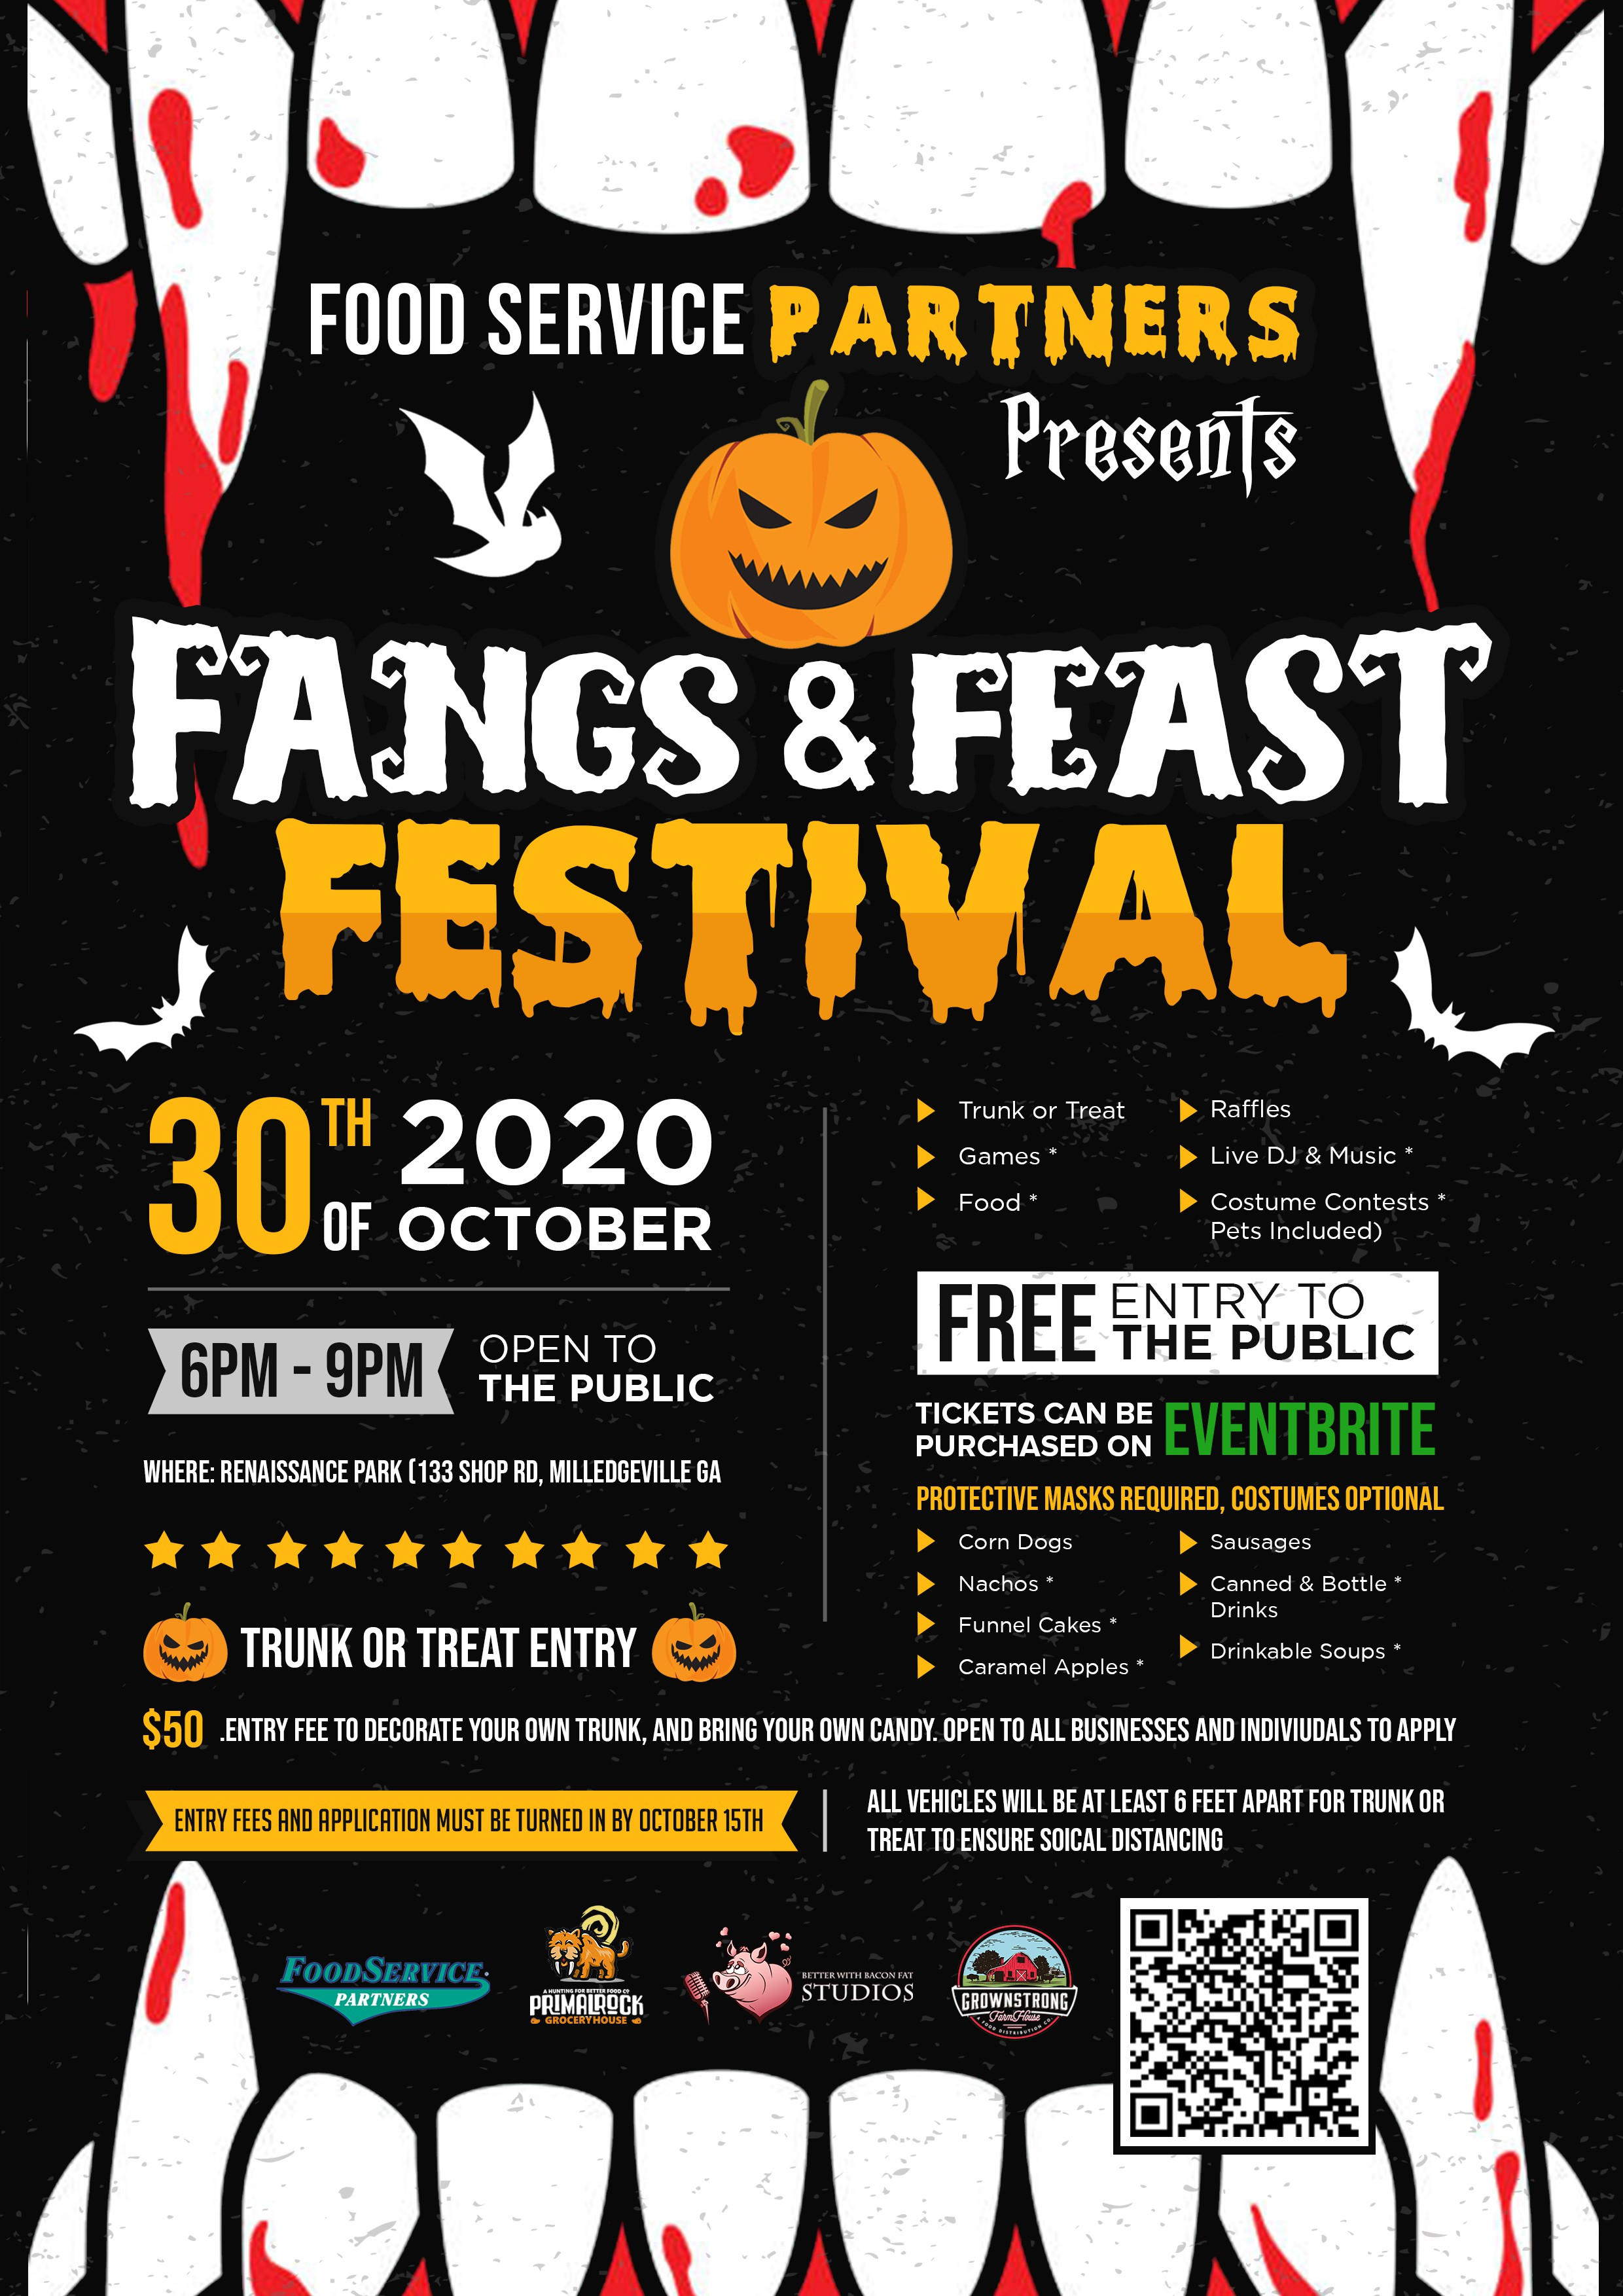 Fangs & Feast Festival